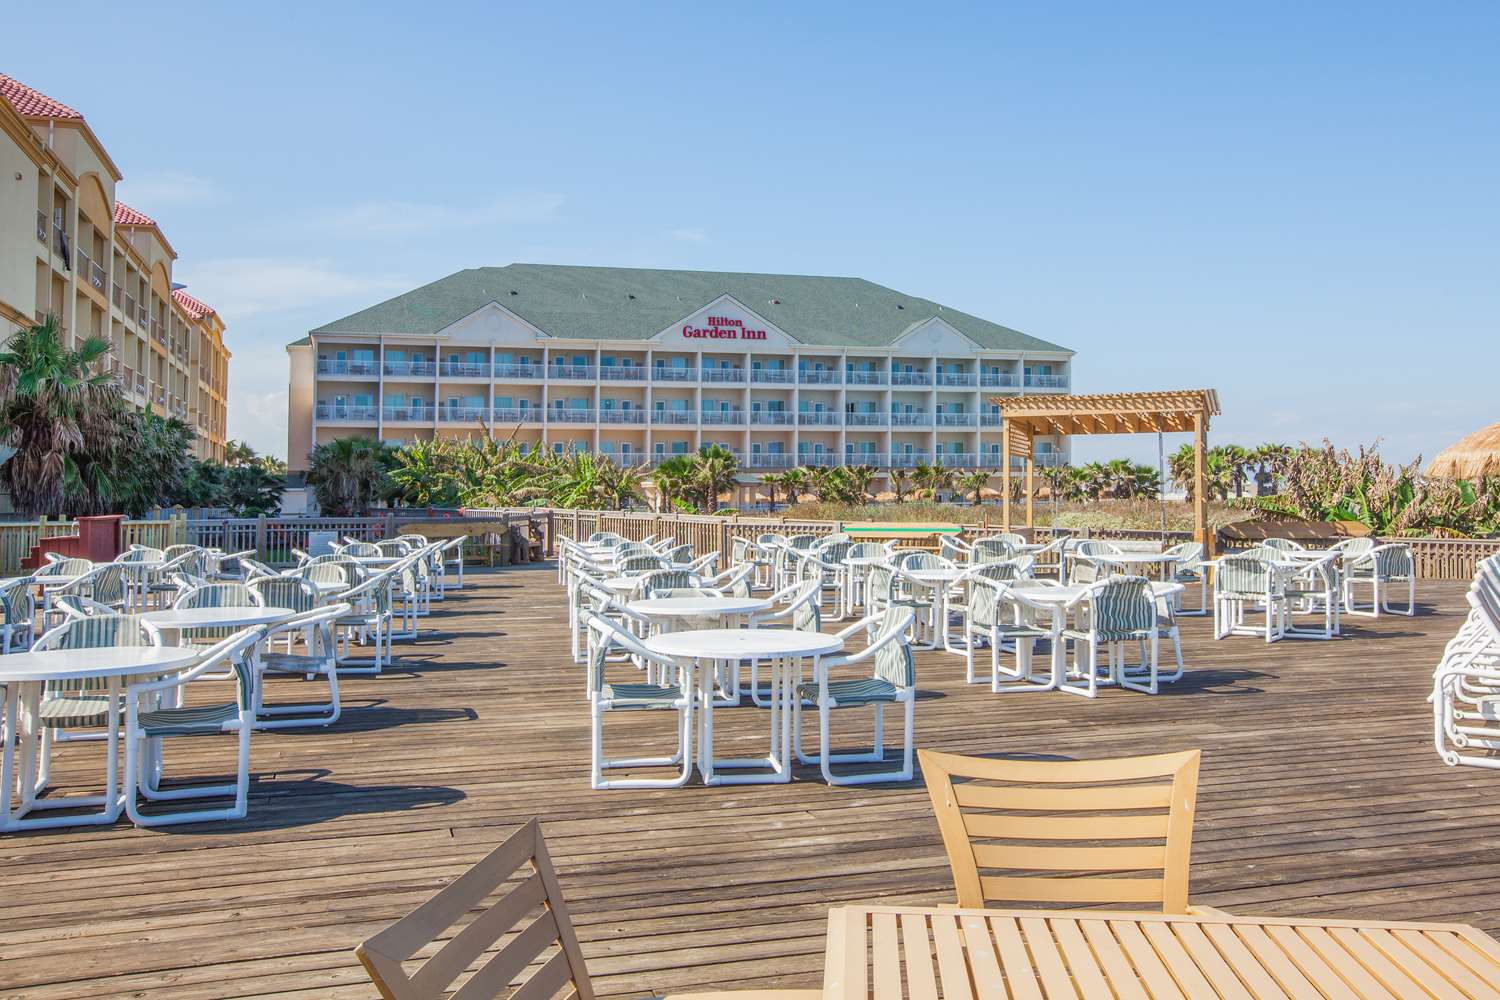 Meetings And Events At Hilton Garden Inn South Padre Island